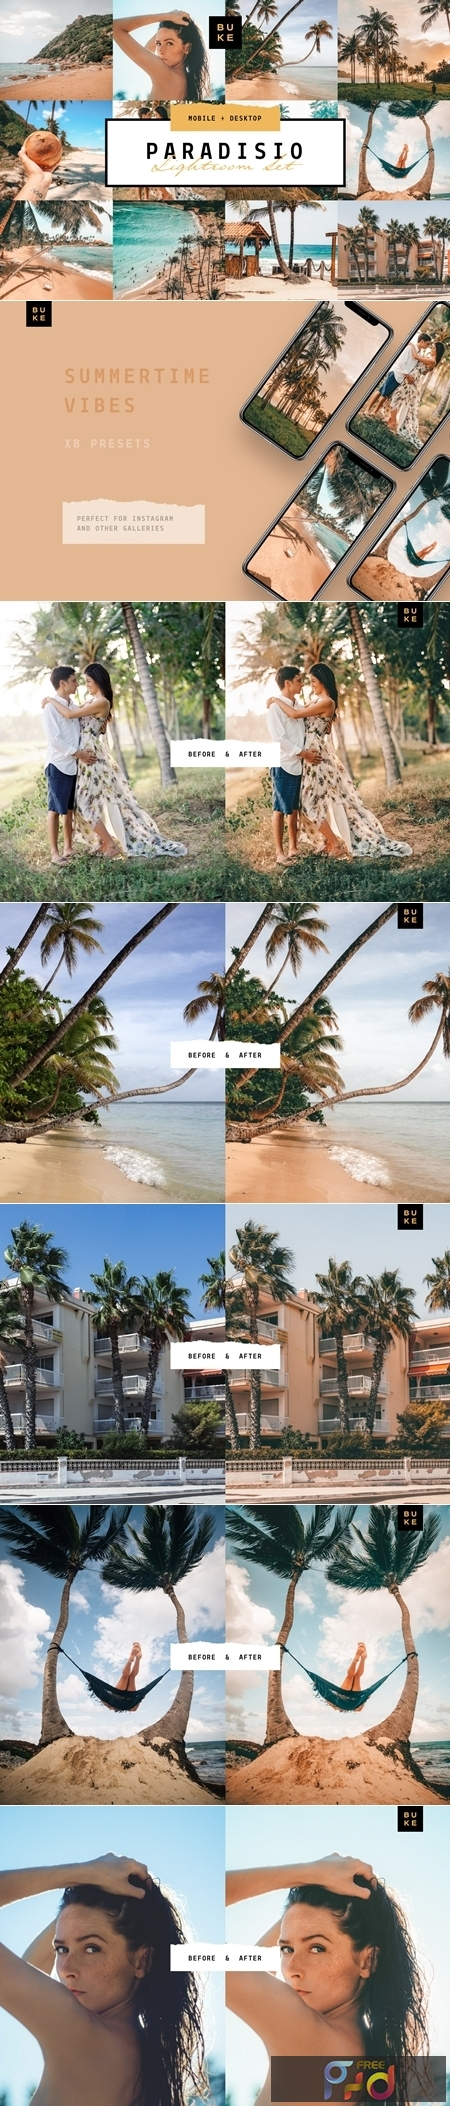 Paradisio 8 Lightroom Presets Bundle 3978938 1